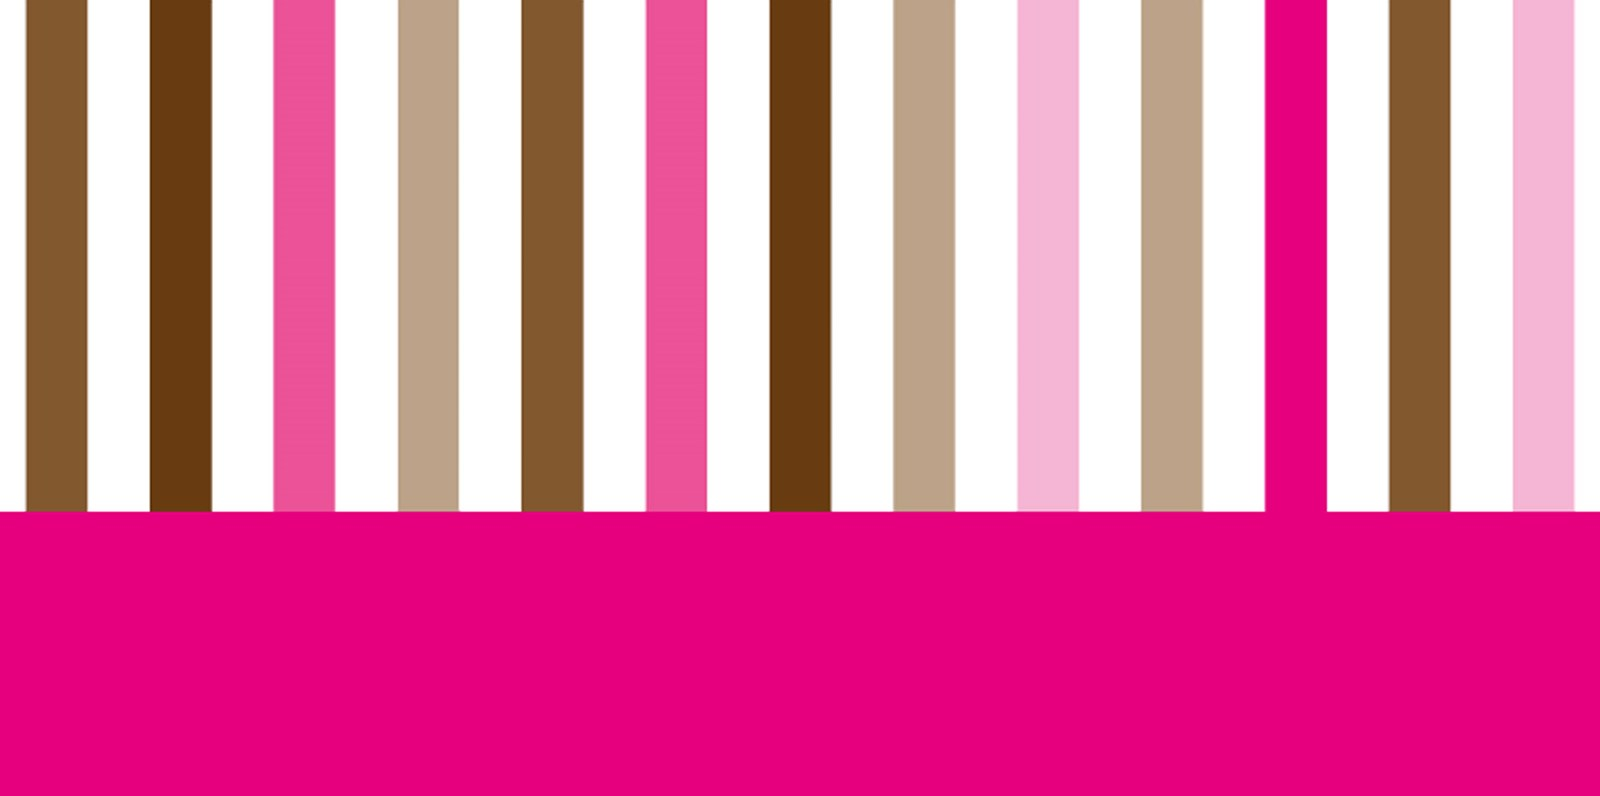 Pink and brown banner